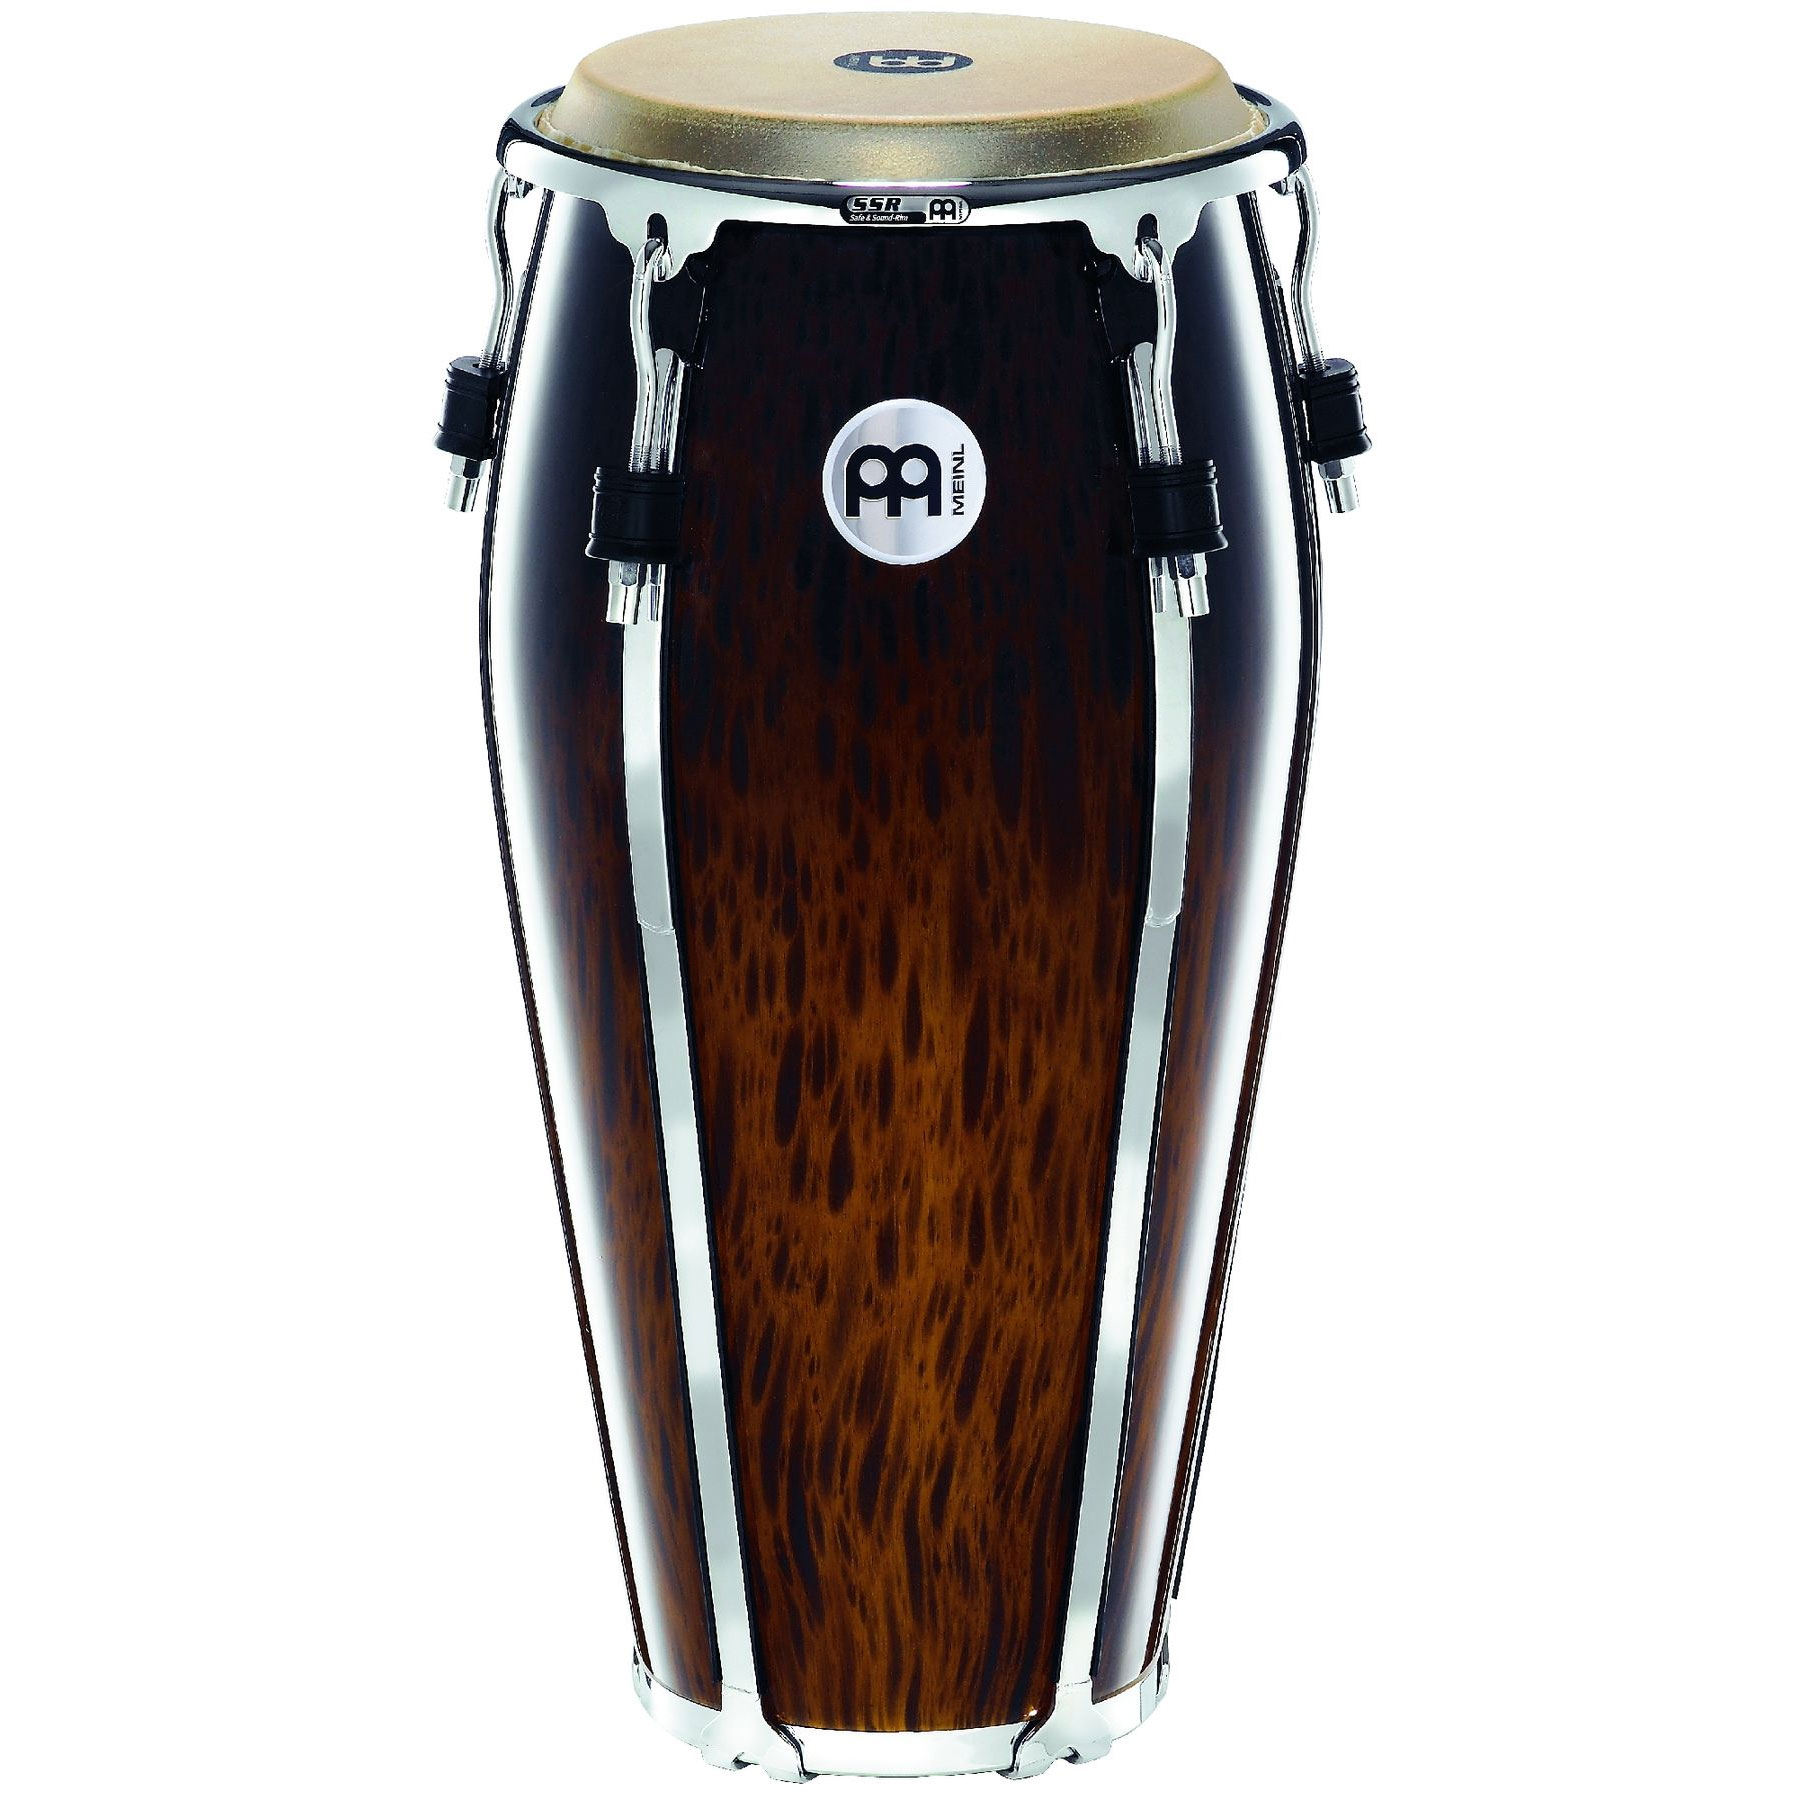 "Meinl 12"" Floatune Series Conga in Brown Burl"